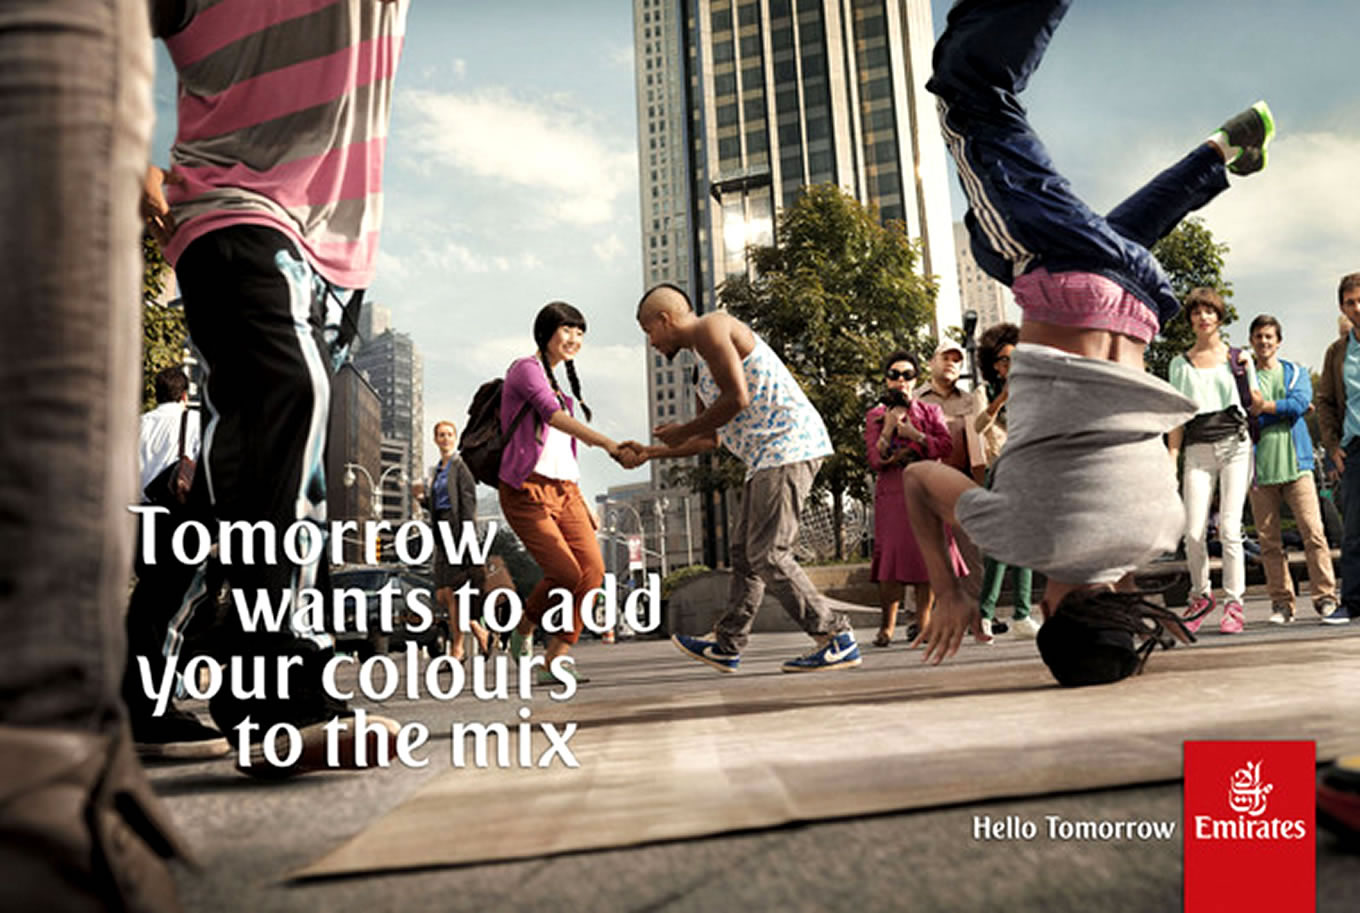 Add Your Colours To The Mix, Hello Tomorrow Marketing Campaign by Emirates Airlines